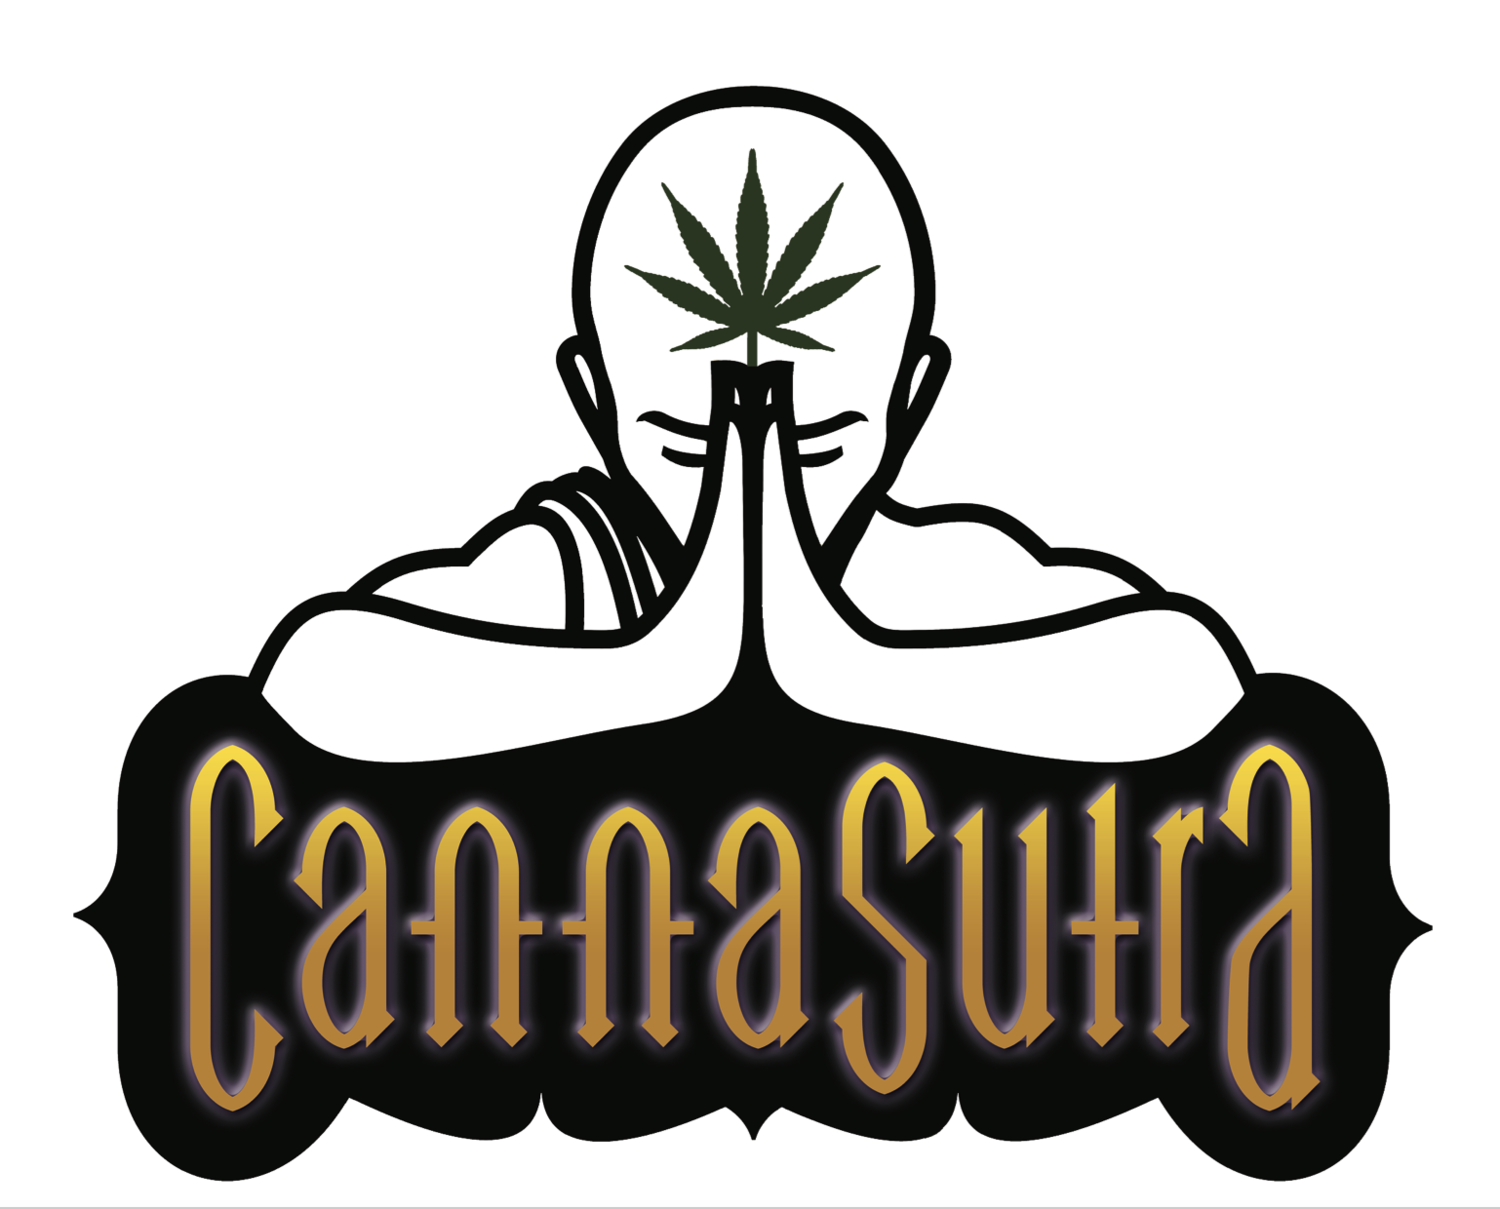 CannaSutra Collective